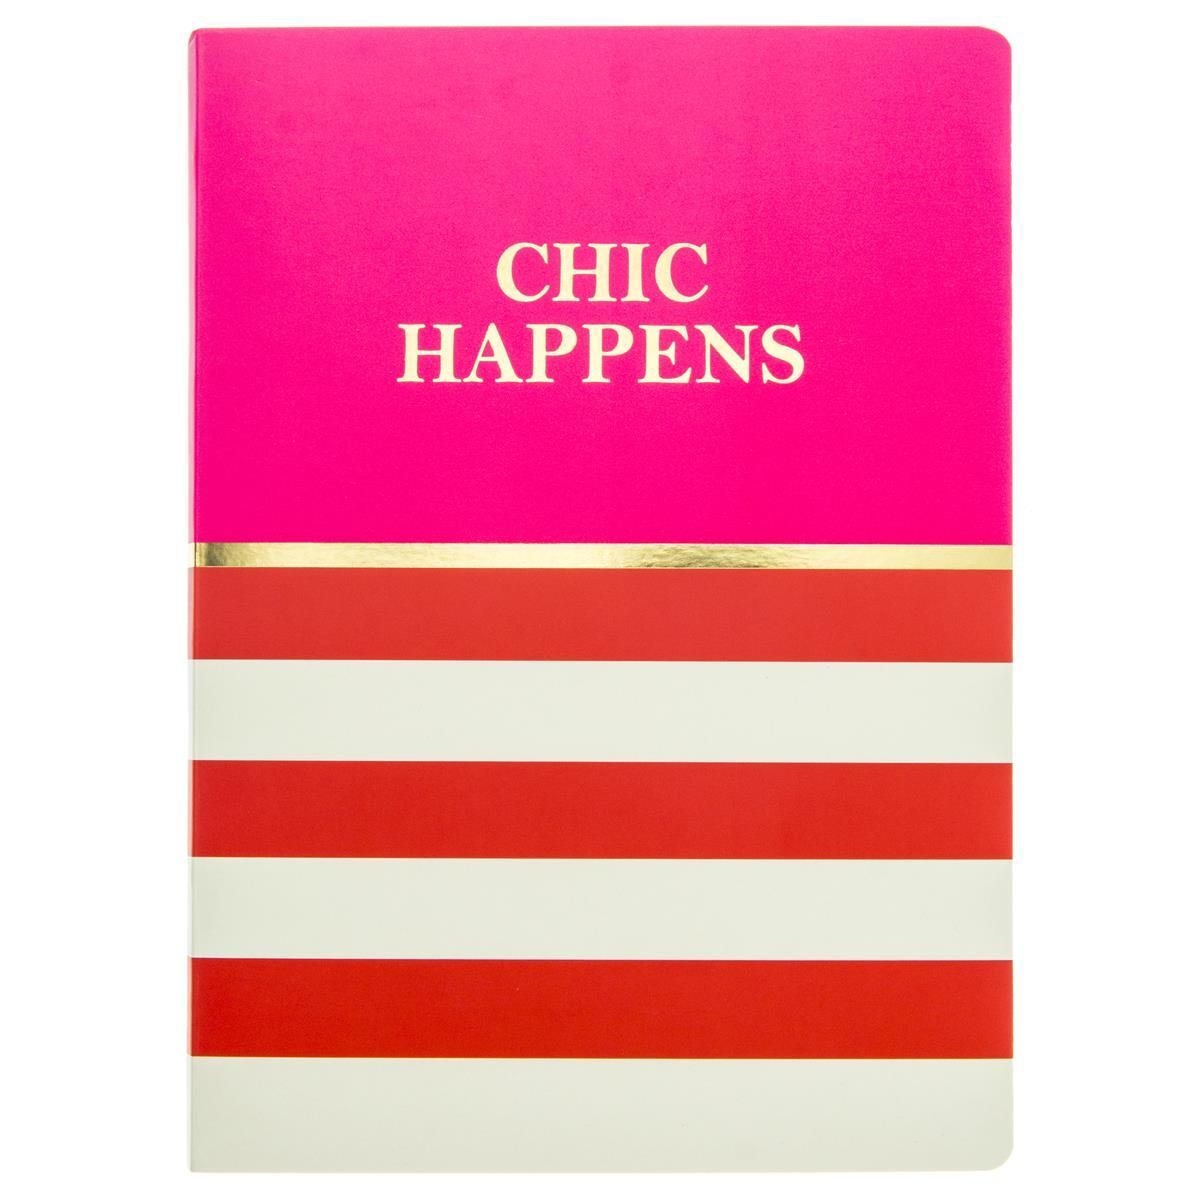 Chic 6x8 Soft Cover Paper Journal